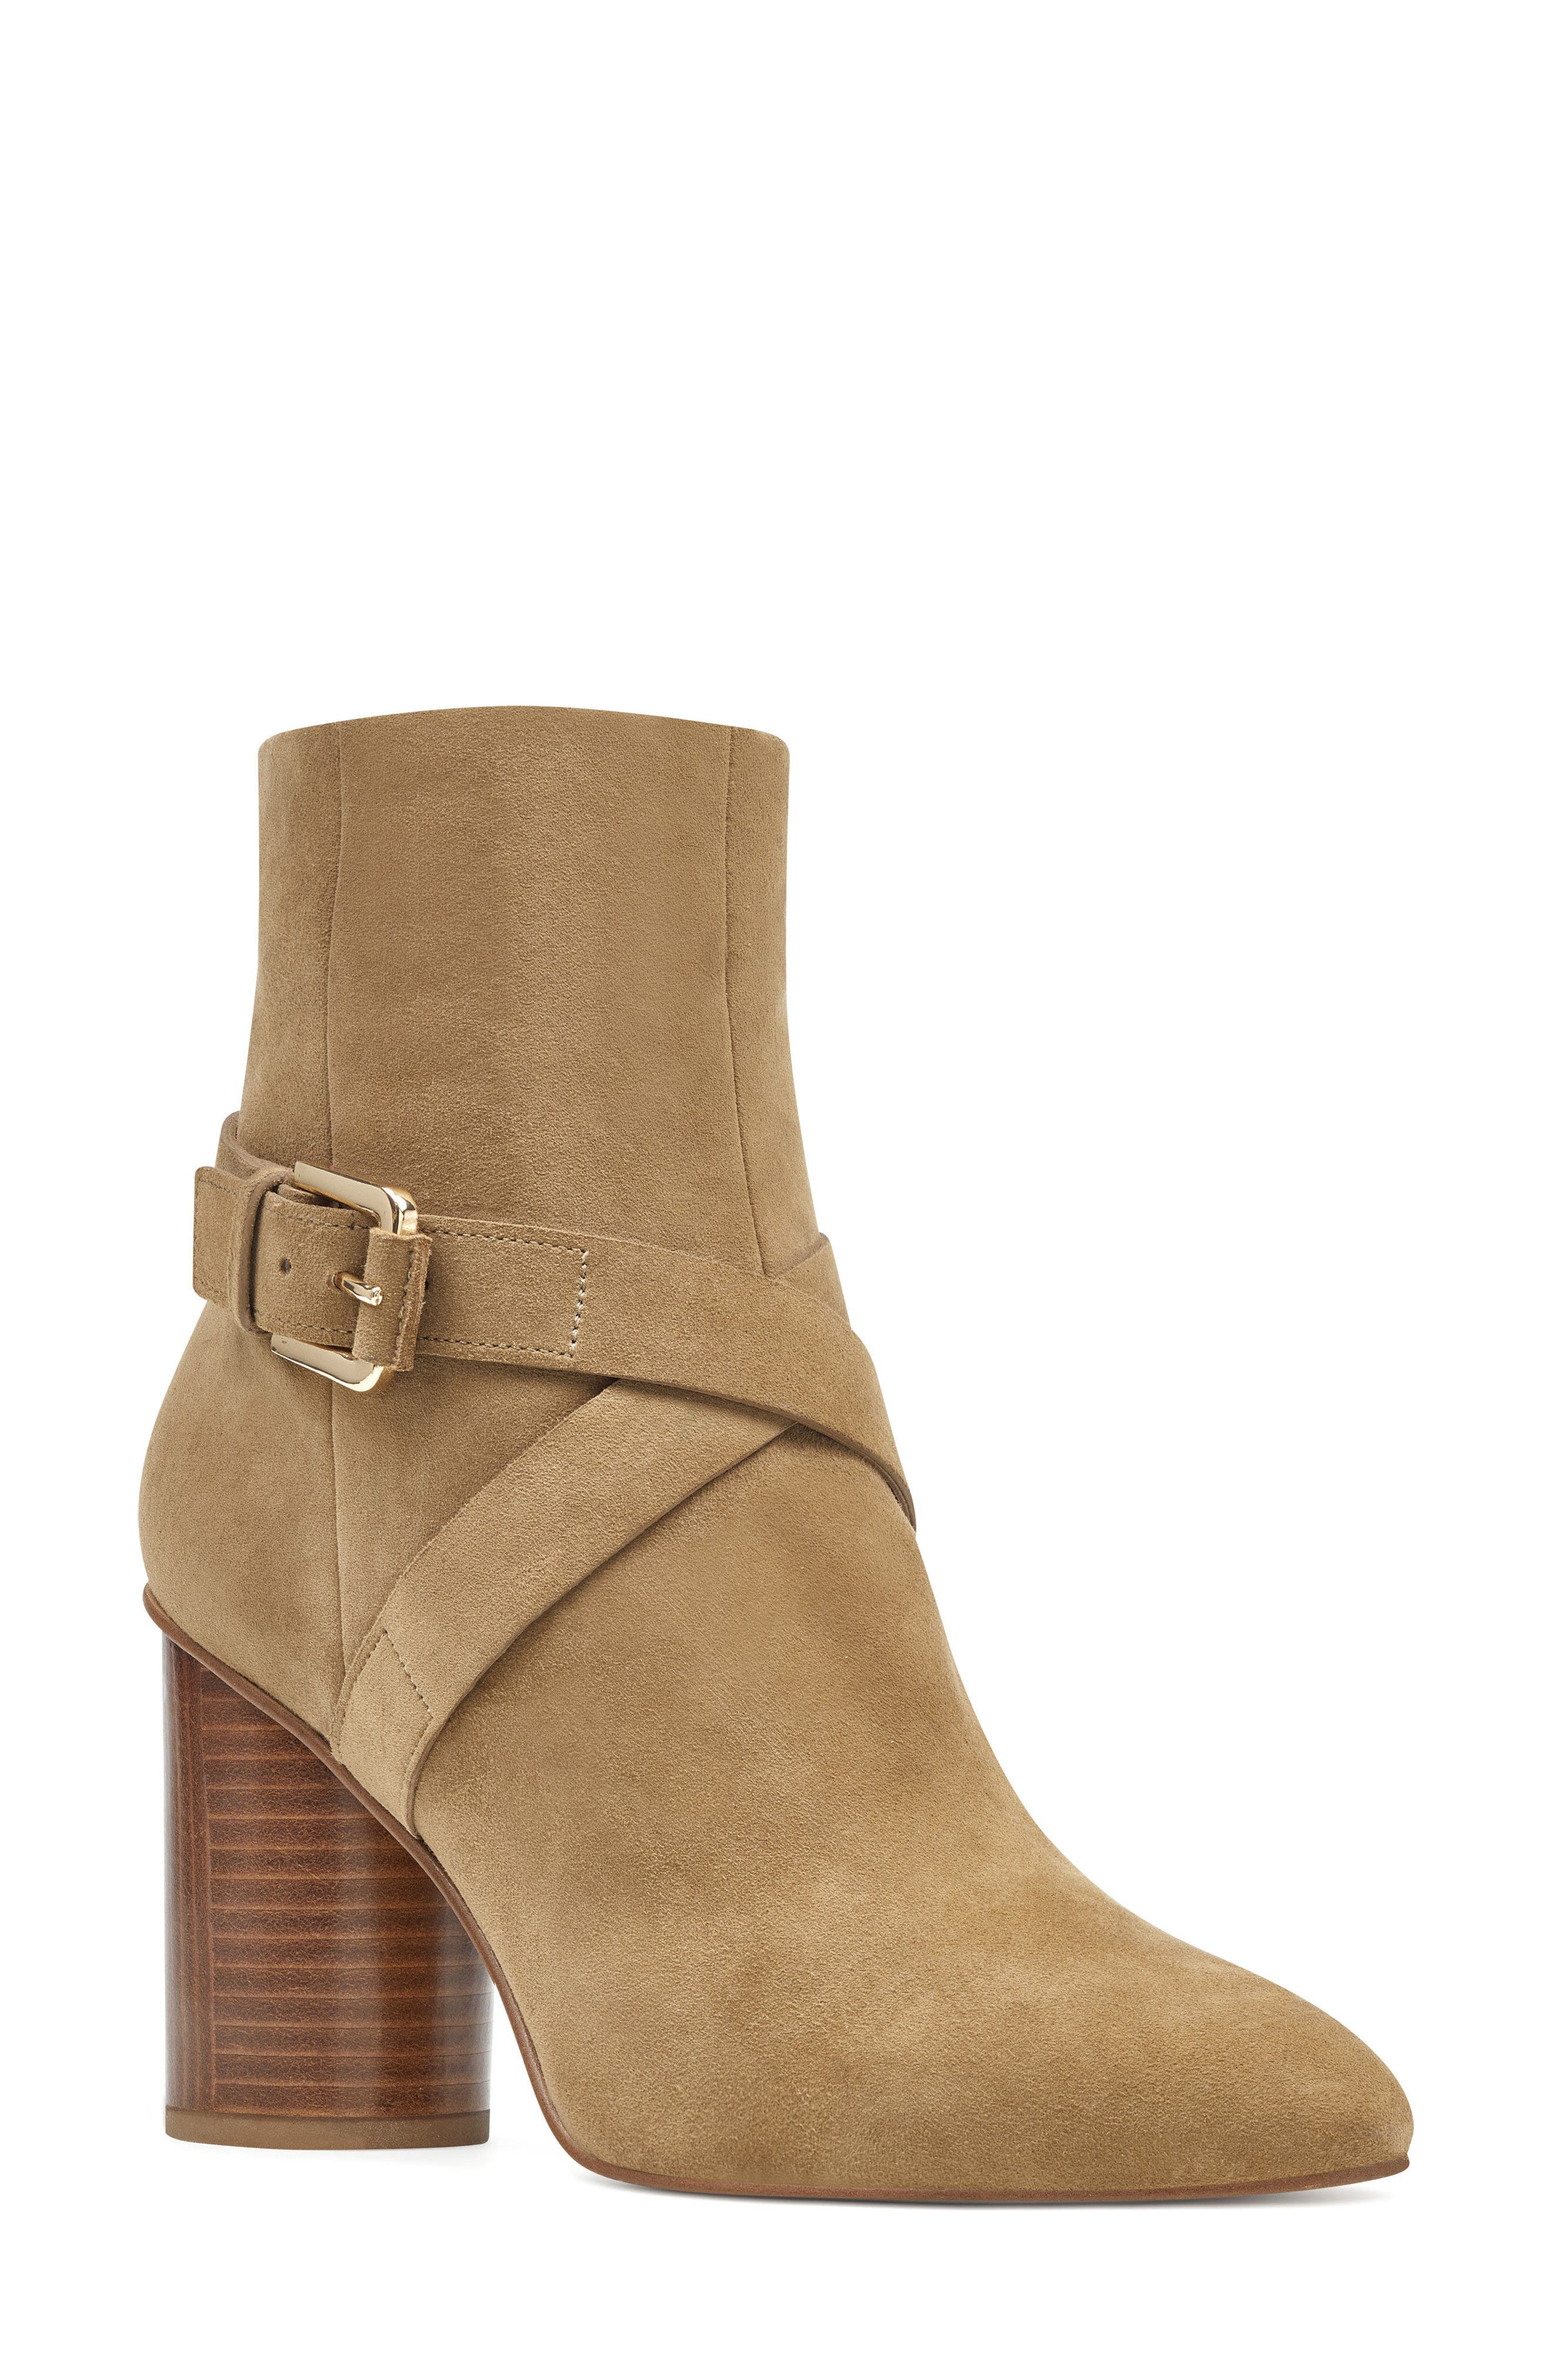 Main Image - Nine West Cavanagh Pointy Toe Bootie (Women)